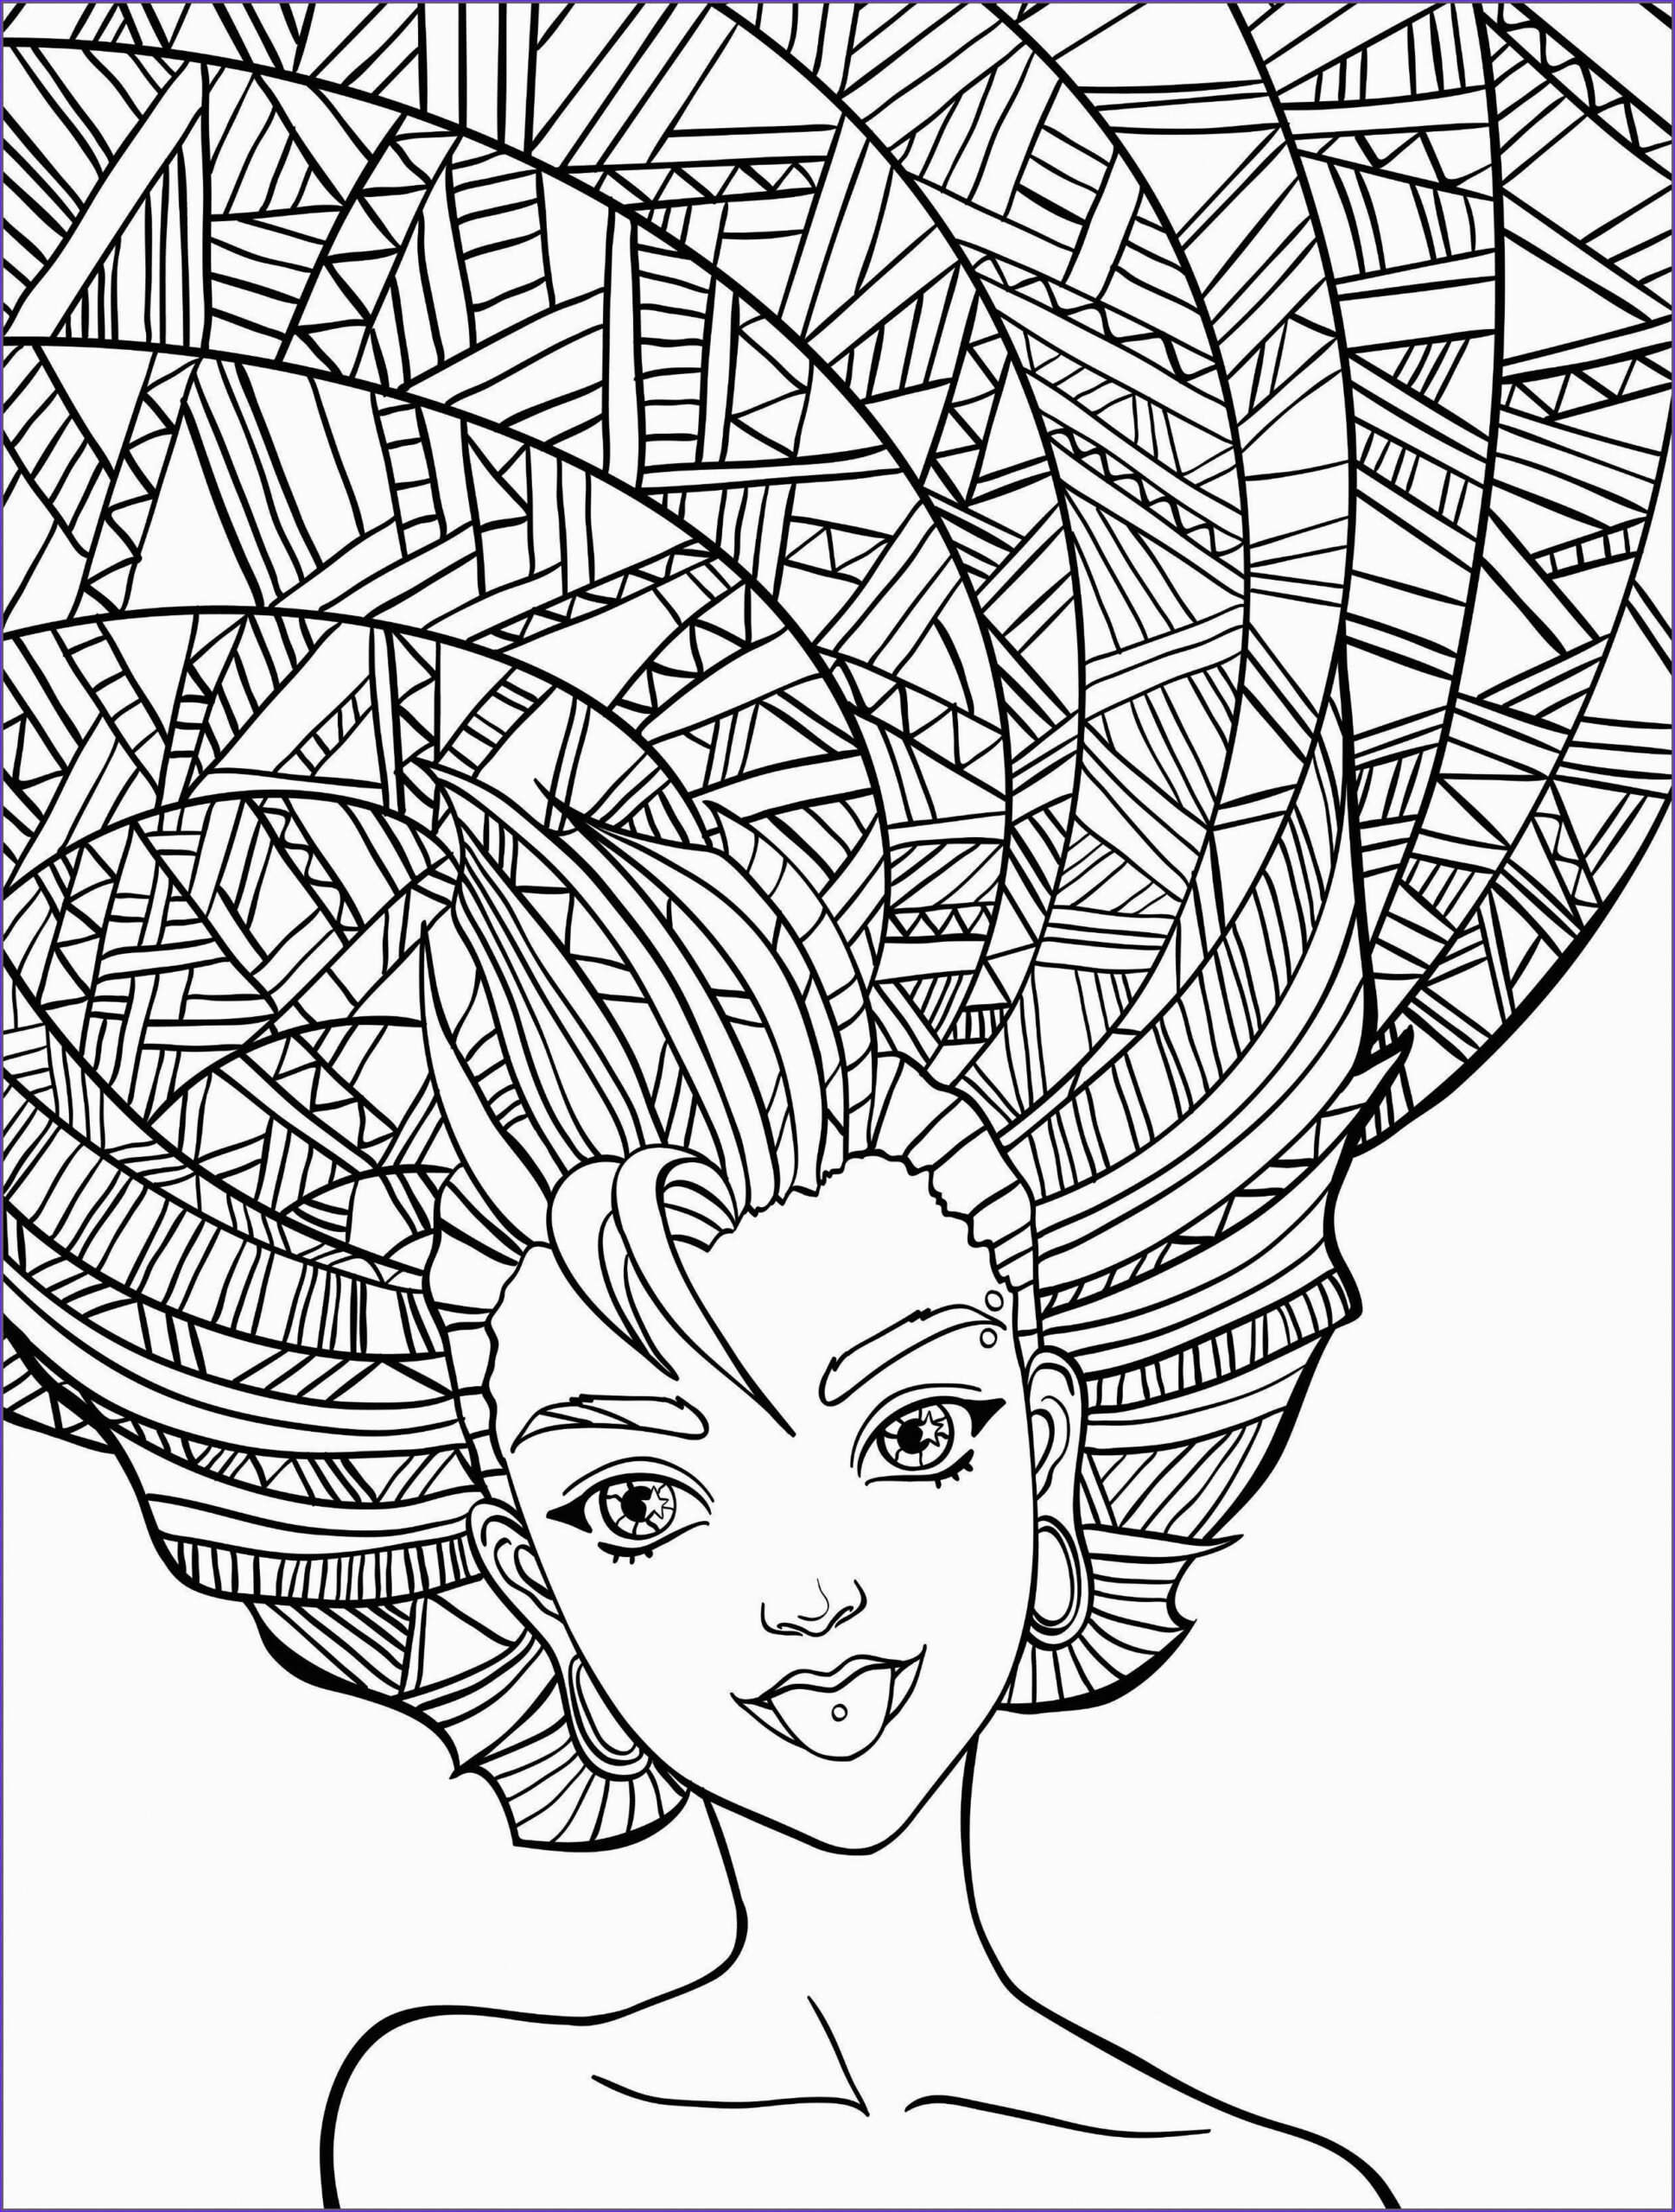 Adult Coloring Book Pictures Inspirational Gallery Coloring Pages for Adults Best Coloring Pages for Kids